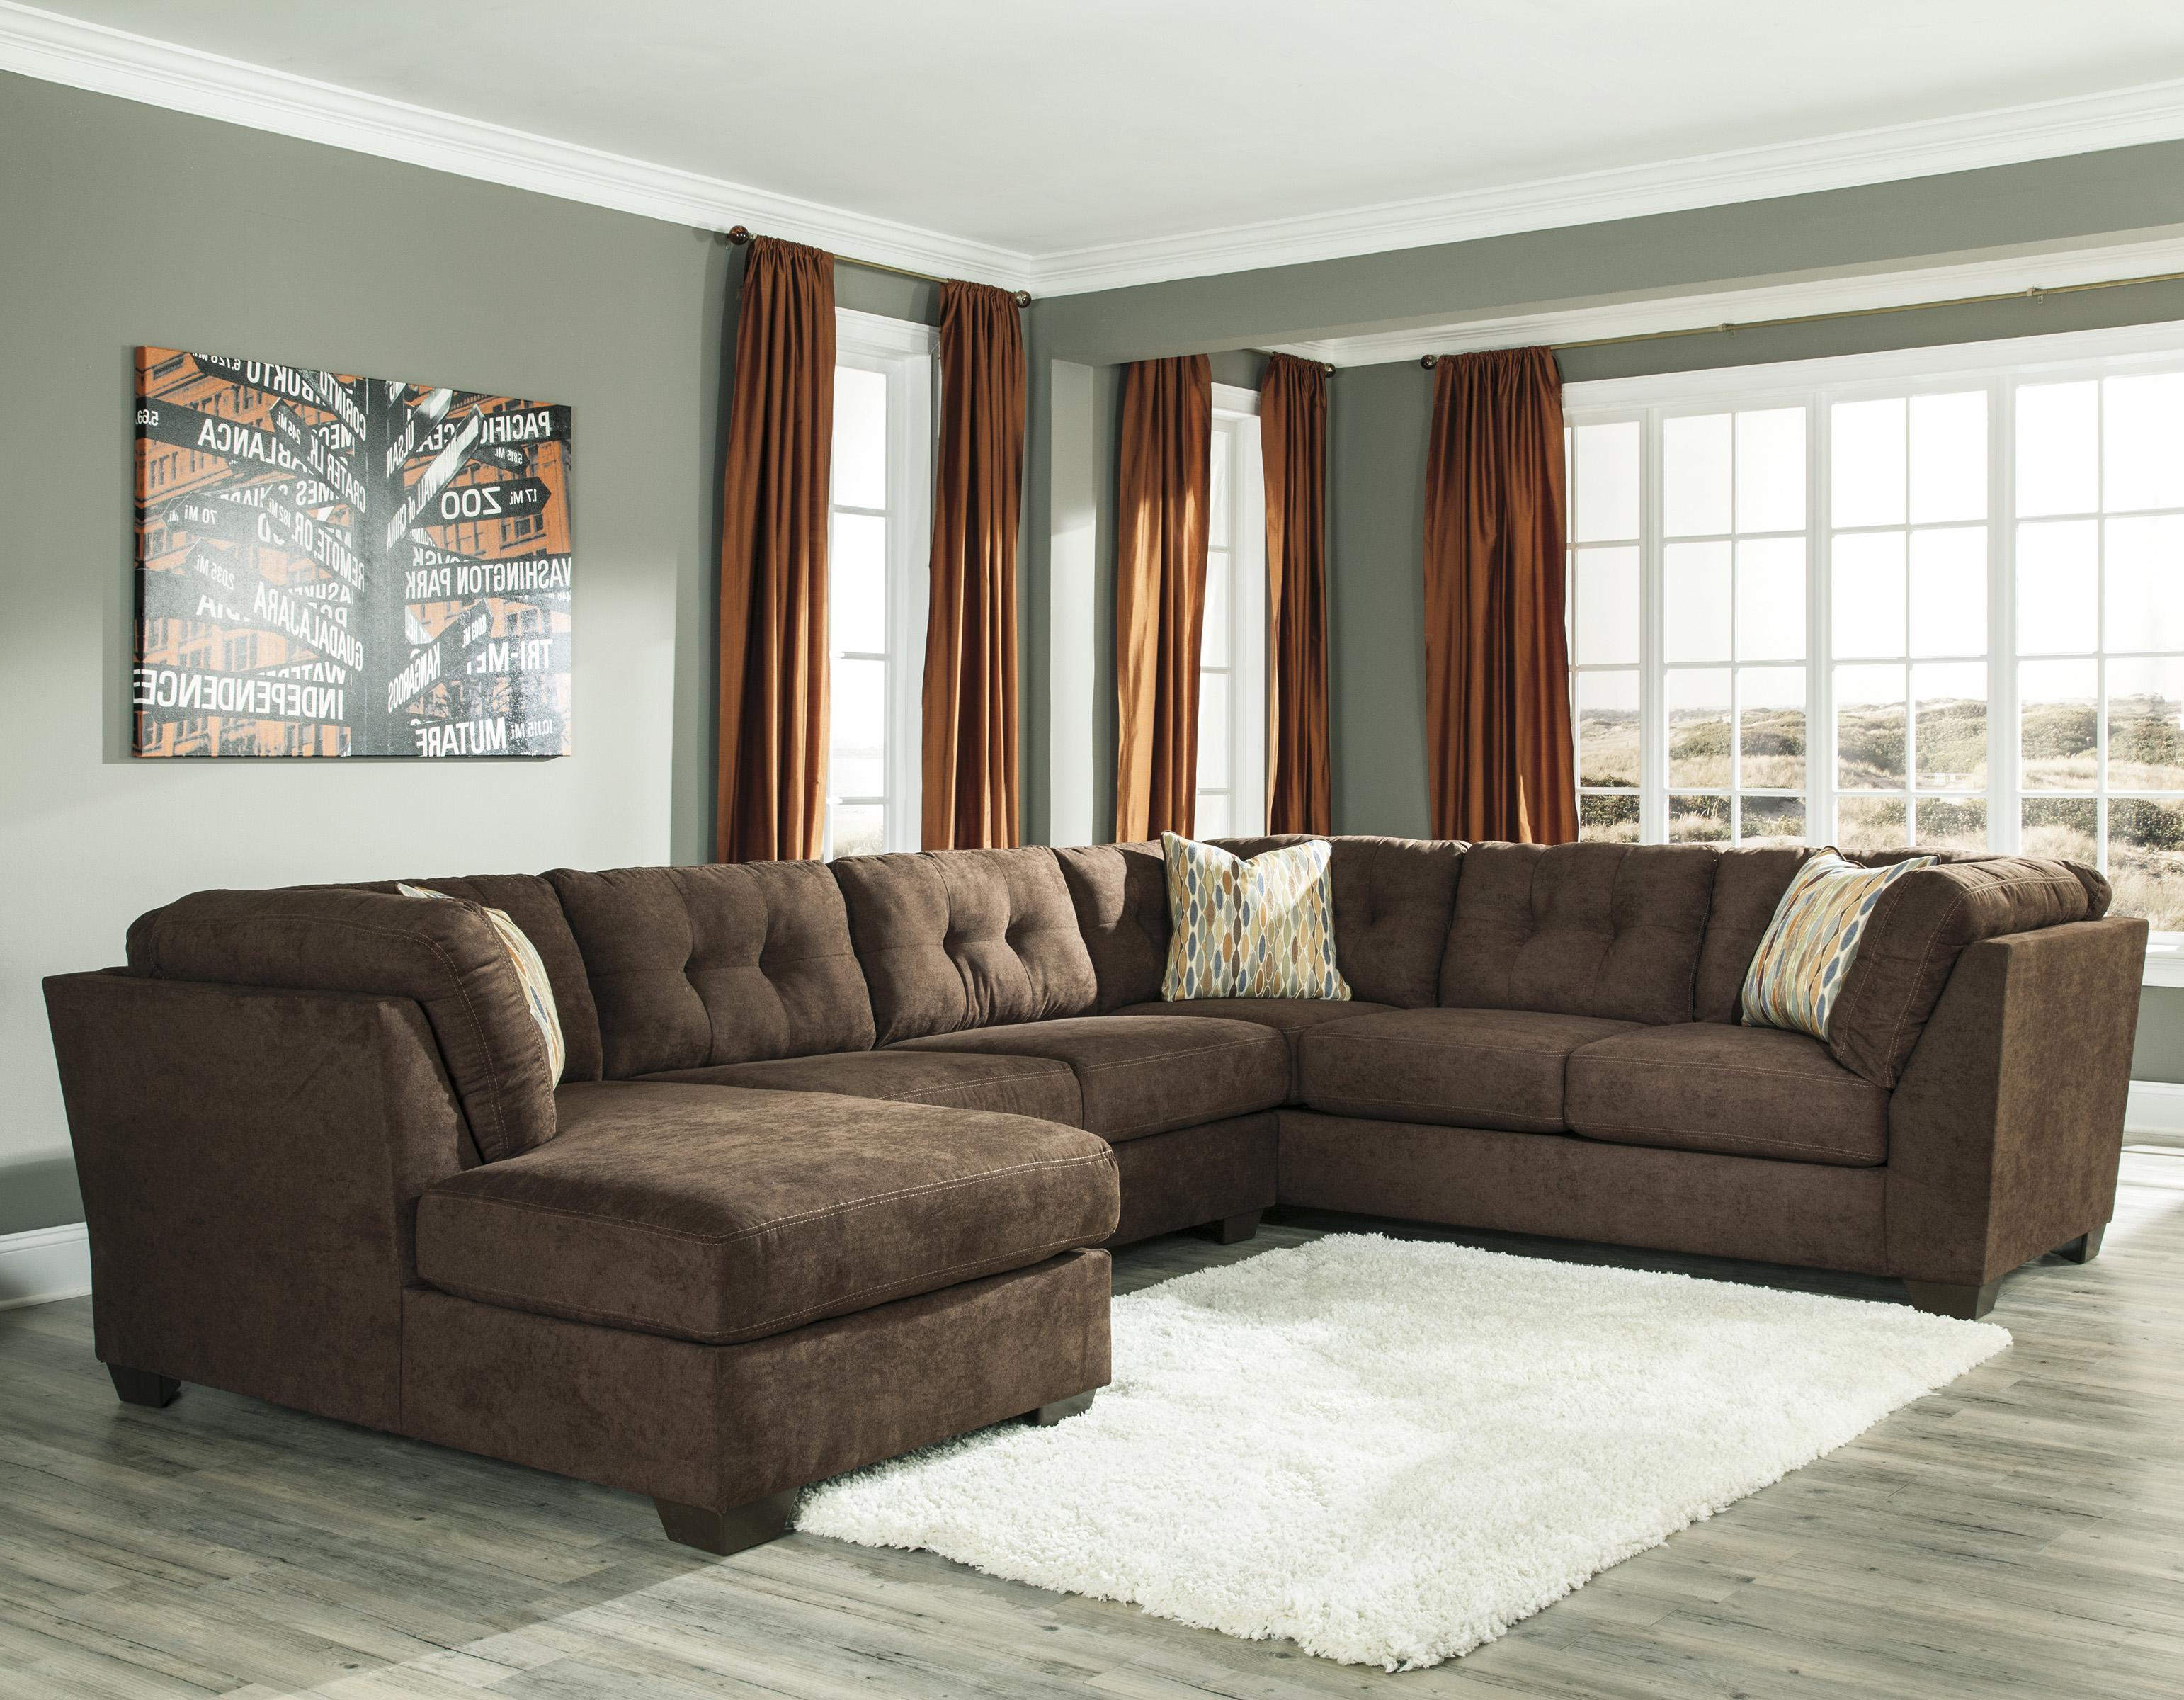 Ashley/Benchcraft Delta City - Chocolate 3-Piece Sectional w/ Sleeper & Left Chaise - Item Number: 1970216+71+38